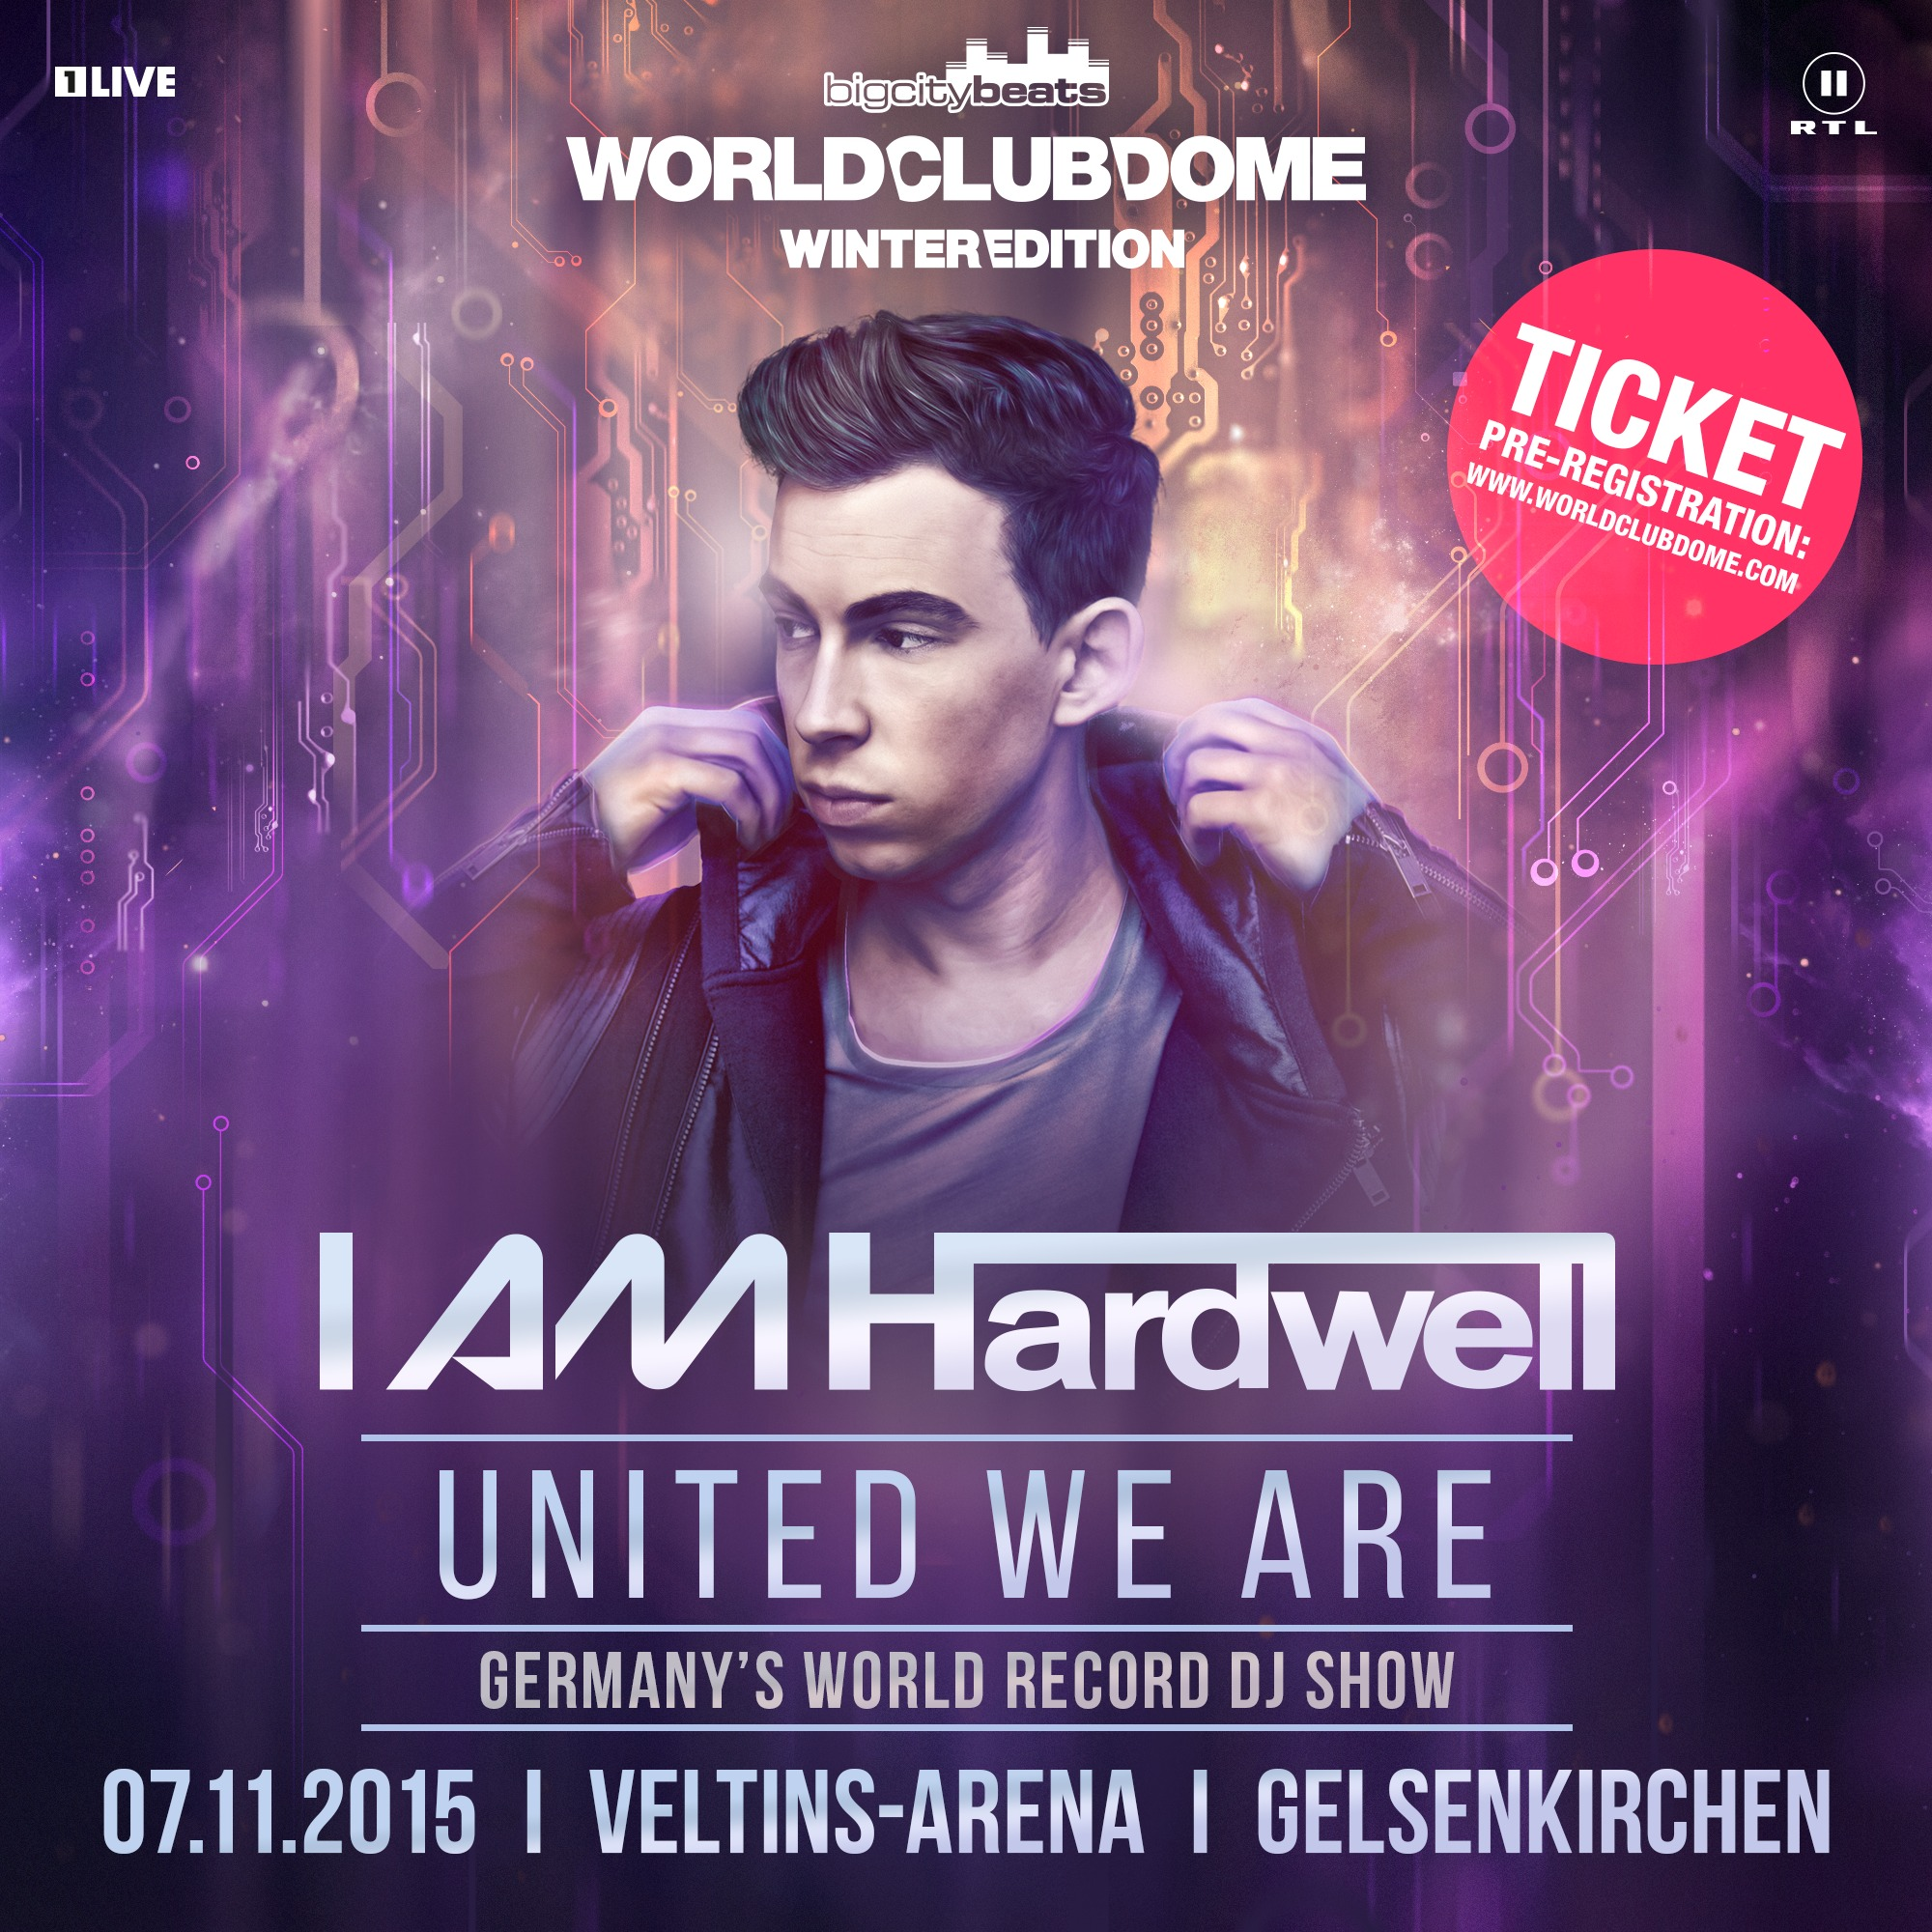 Hardwell - United we are - iam hardwell poster gelsenkirchen tickets official